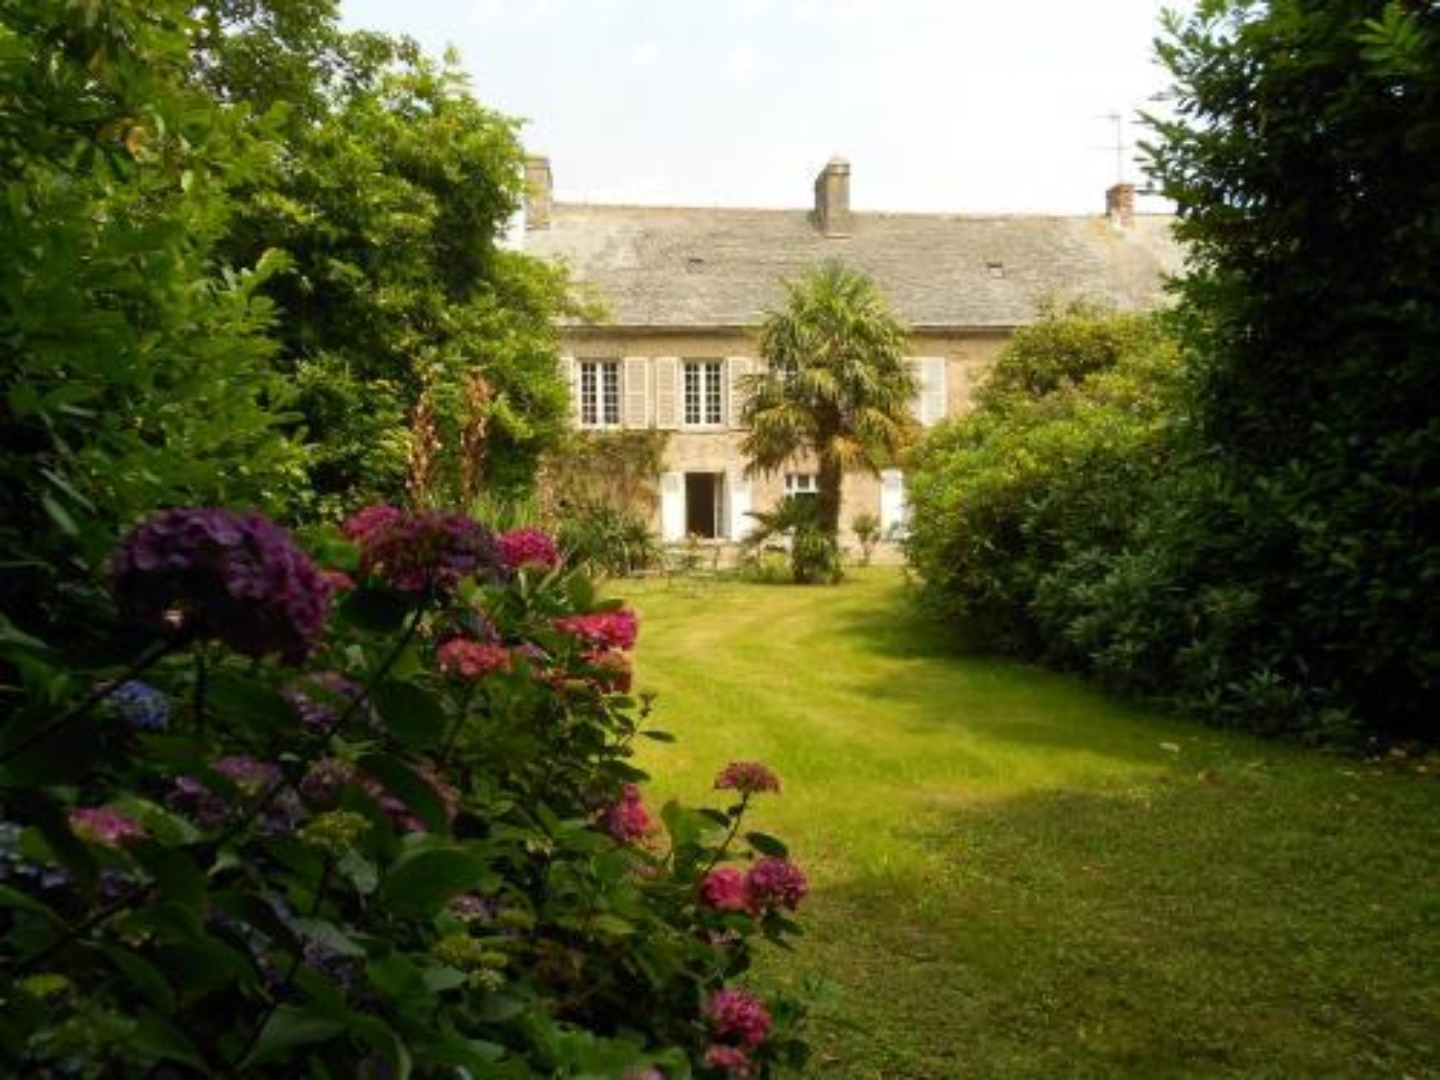 A house with bushes in the background at Manoir de Bellauney.